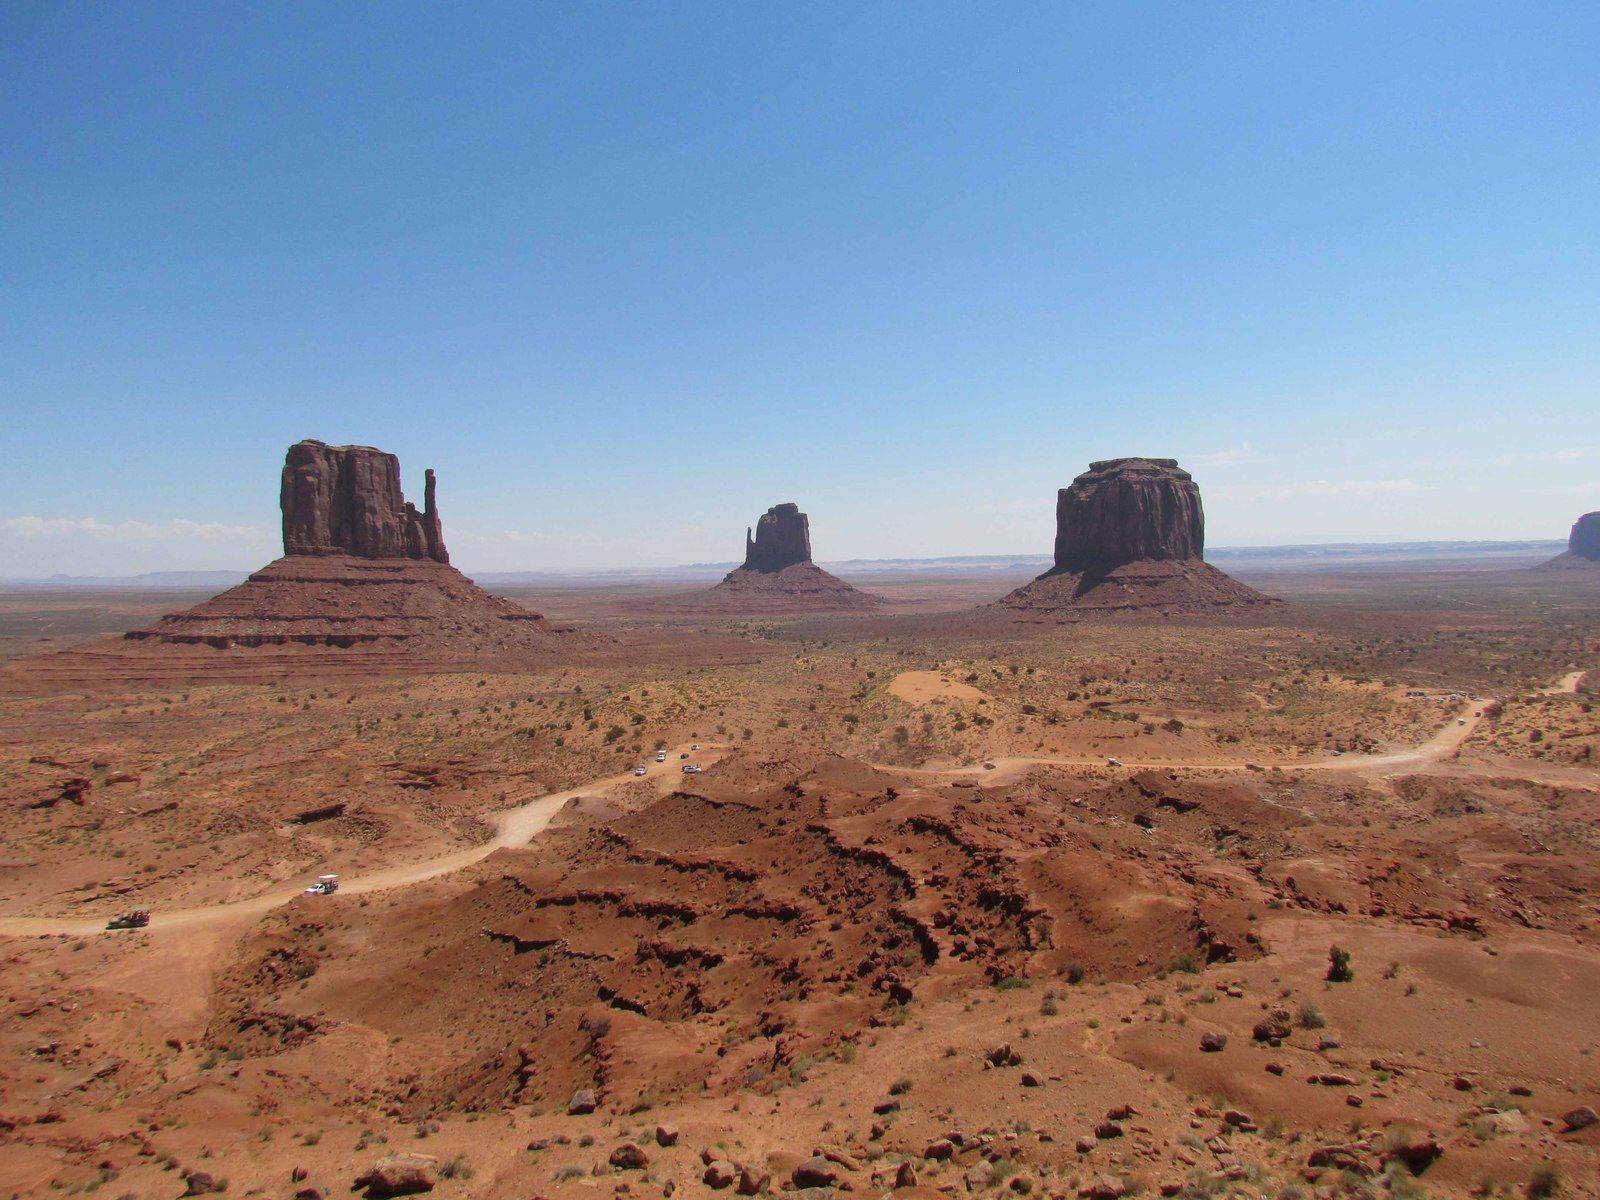 MONUMENT VALLEY, NAVAJO TRIBAL PARK